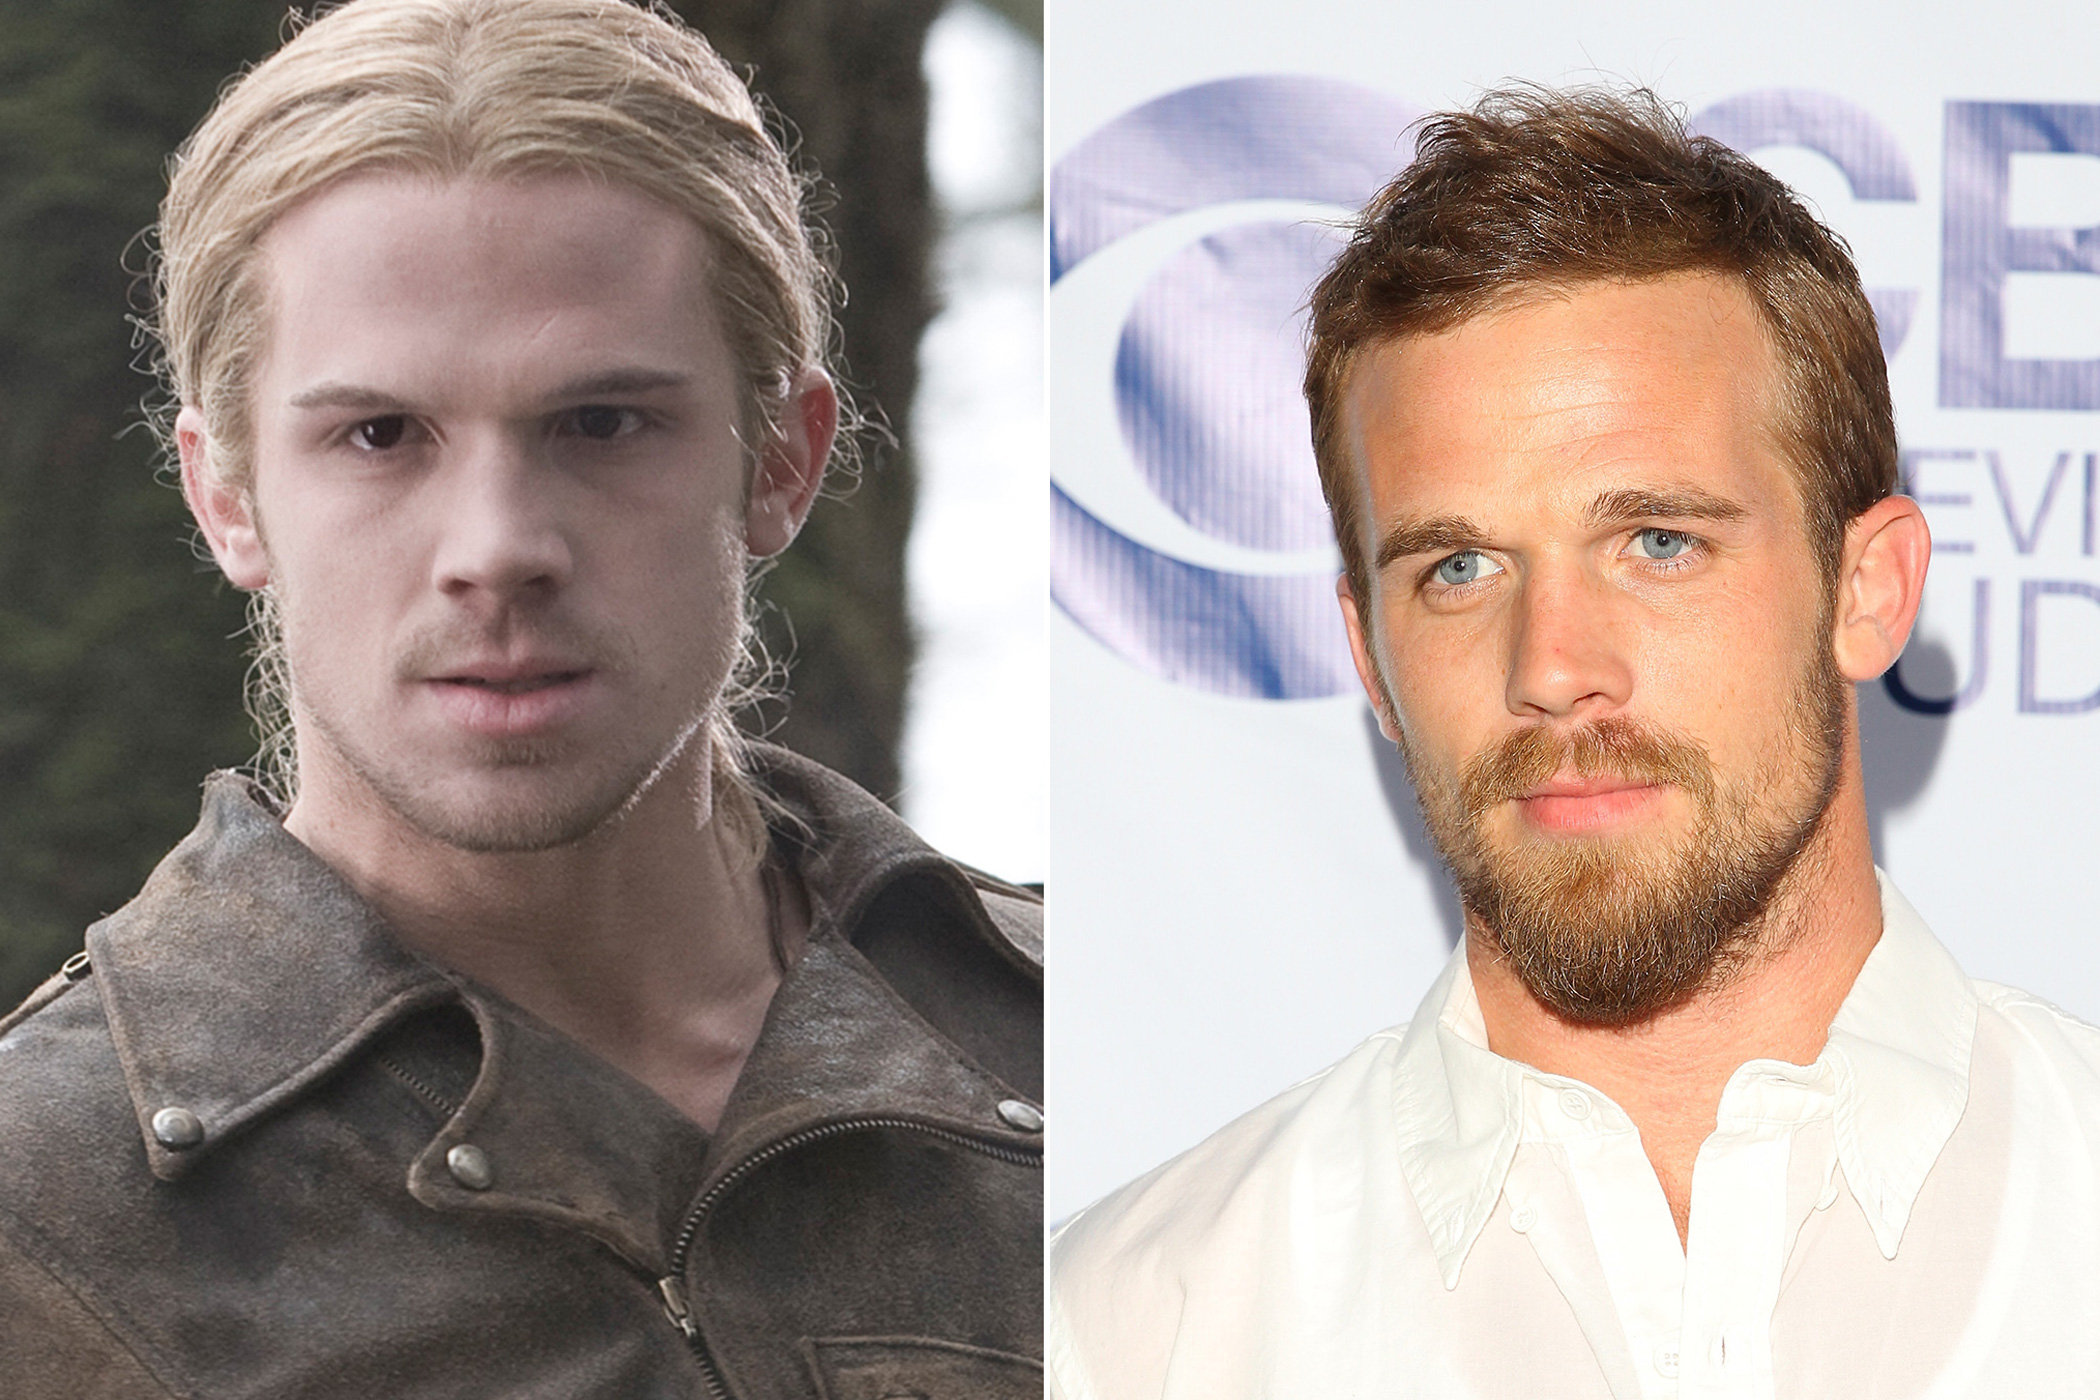 Left: Cam Gigandet as James in Twilight, 2008; Right: in 2014